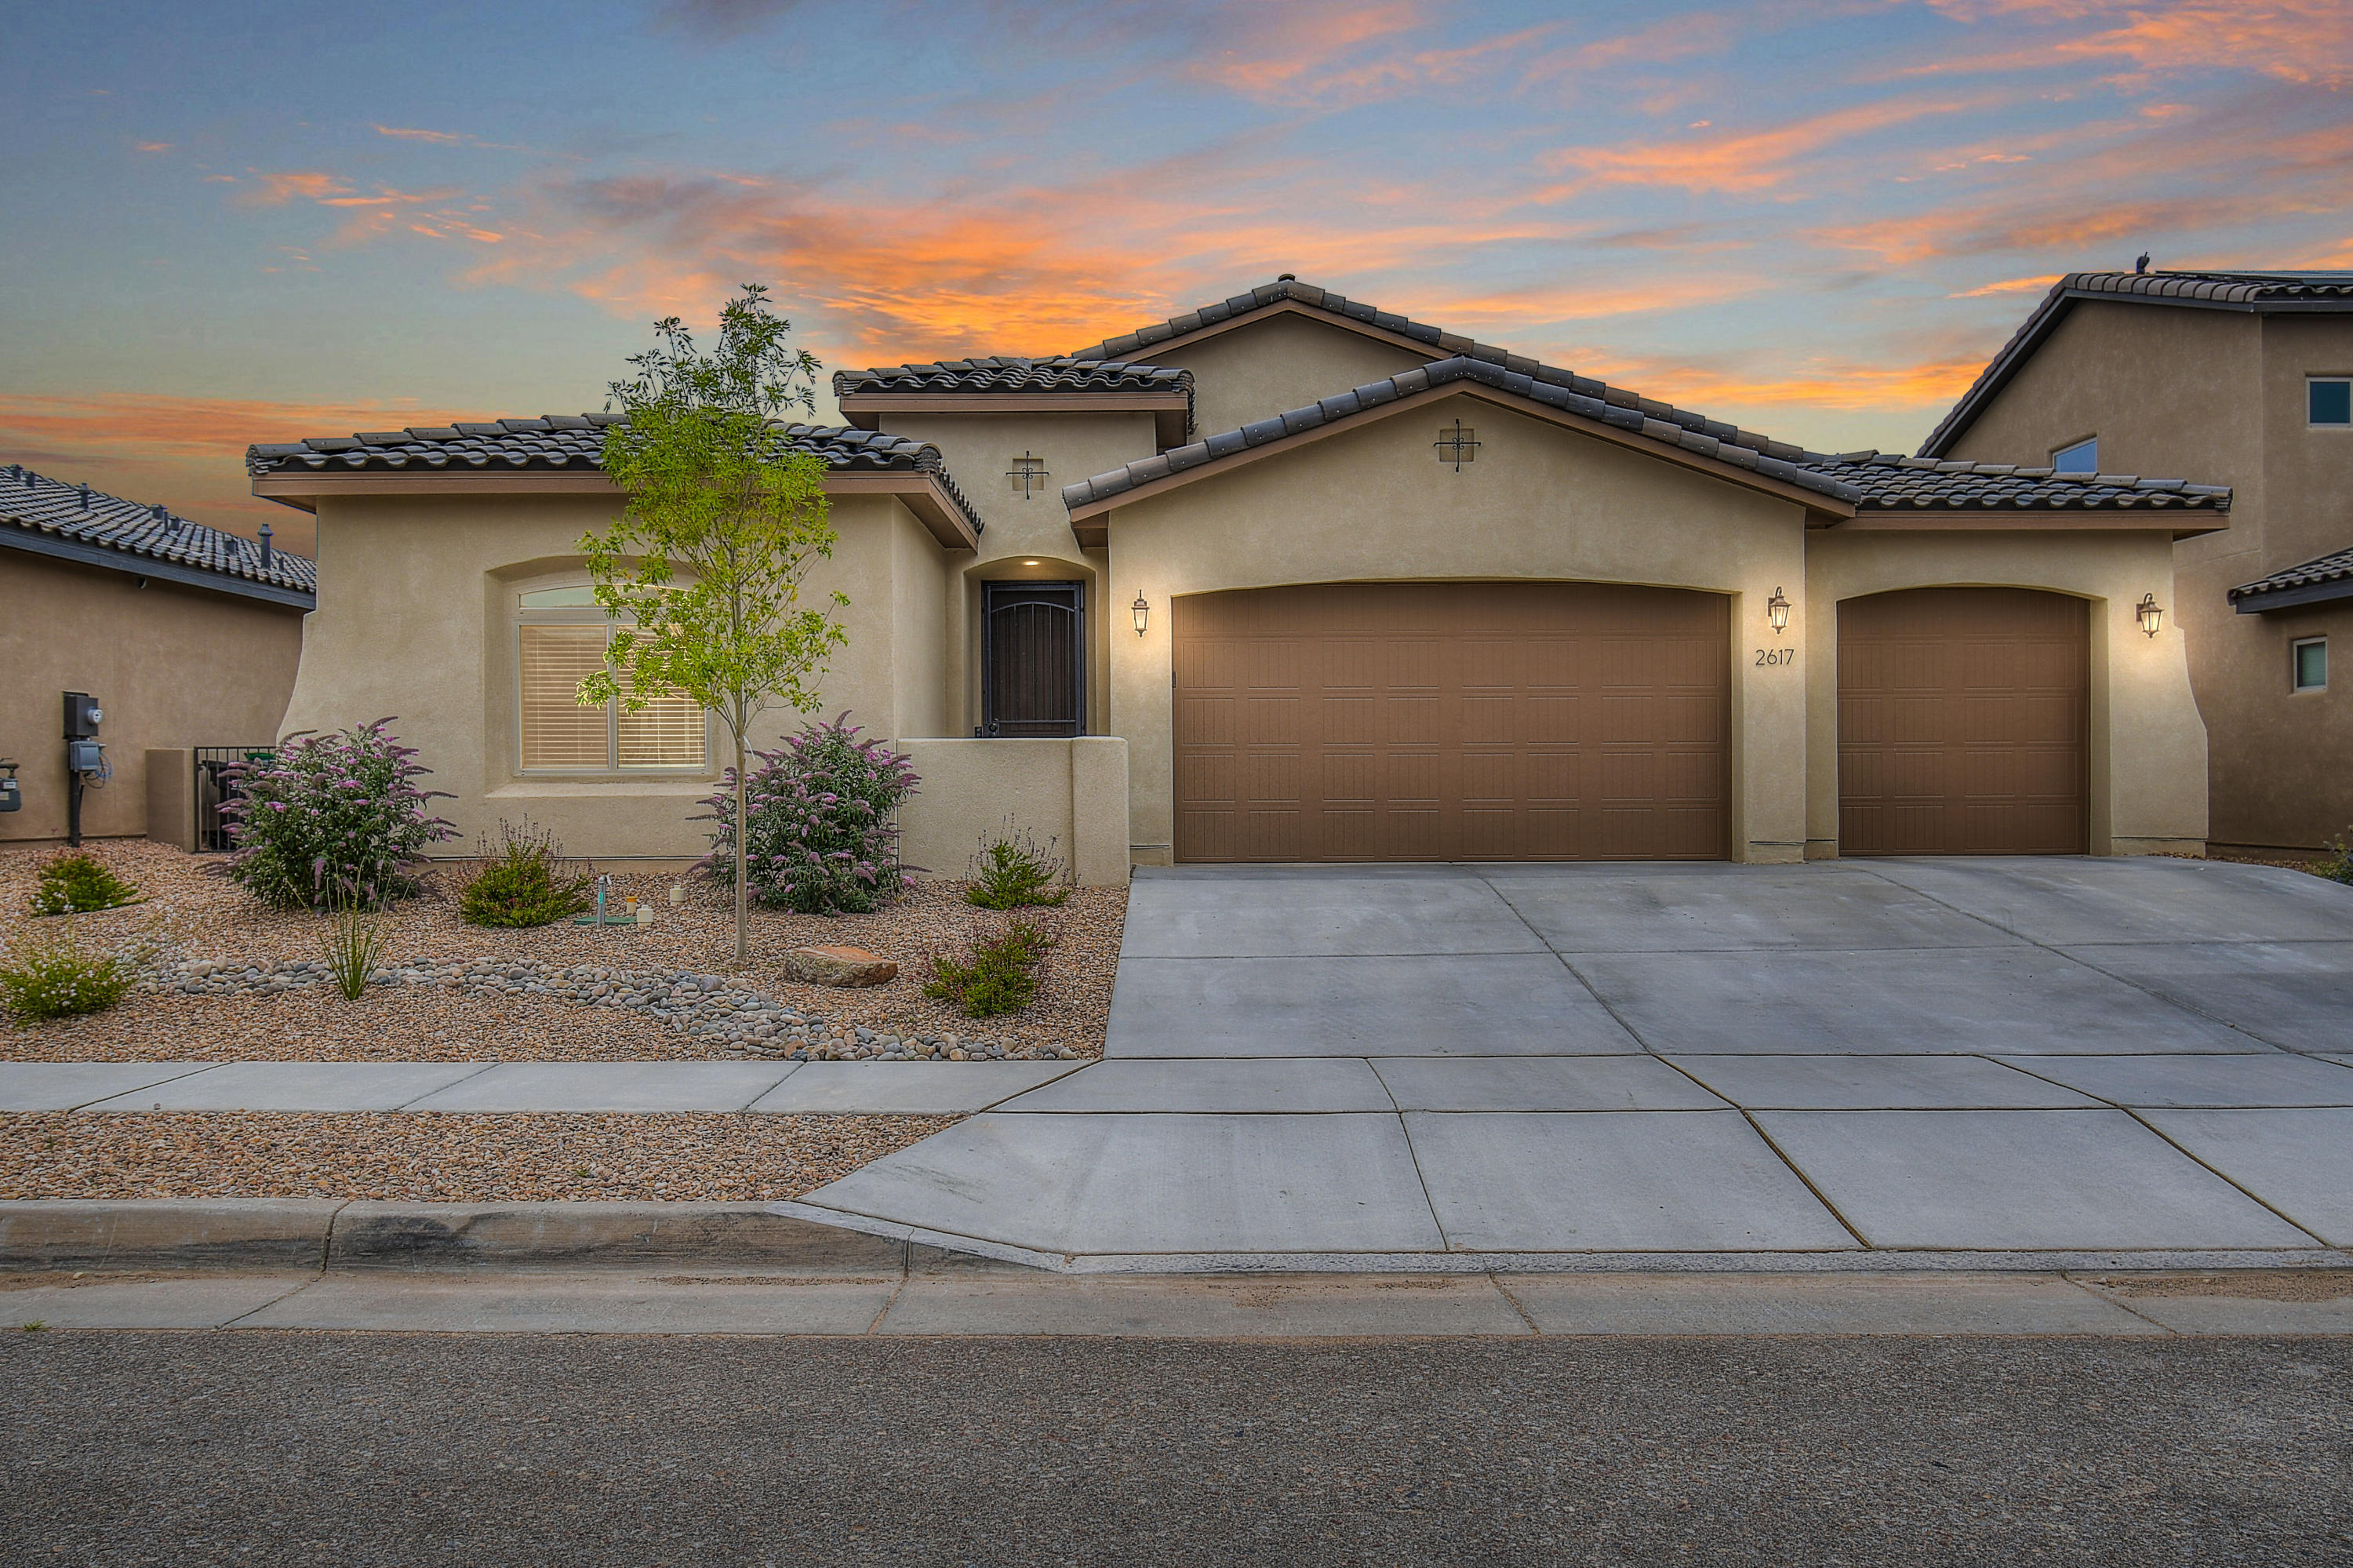 Welcome to this almost new home in Mariposa in Rio Rancho! Front Entry w/skylight leads you into this 3 bed, 2.5 bath, 3-car garage home. Barn doors open to Study/Possible 4th bed. The kitchen features an island w/sink and task lighting w/seating for six. Upgraded cabinets, tile backsplash, stainless built-in appliances, and walk-in pantry make this a chefs dream.  Kitchen is open to dining room w/recessed lighting and plenty of windows for natural light. The great room features coffered ceiling, gas log fireplace, ceiling fan and expansive glass doors leading to the covered patio. Master suite features coffered ceiling with ceiling fan and huge walk-in closet. Master bath has double sinks, soaking tub with tile surround, separate water closet and walk-in shower w/frameless door.